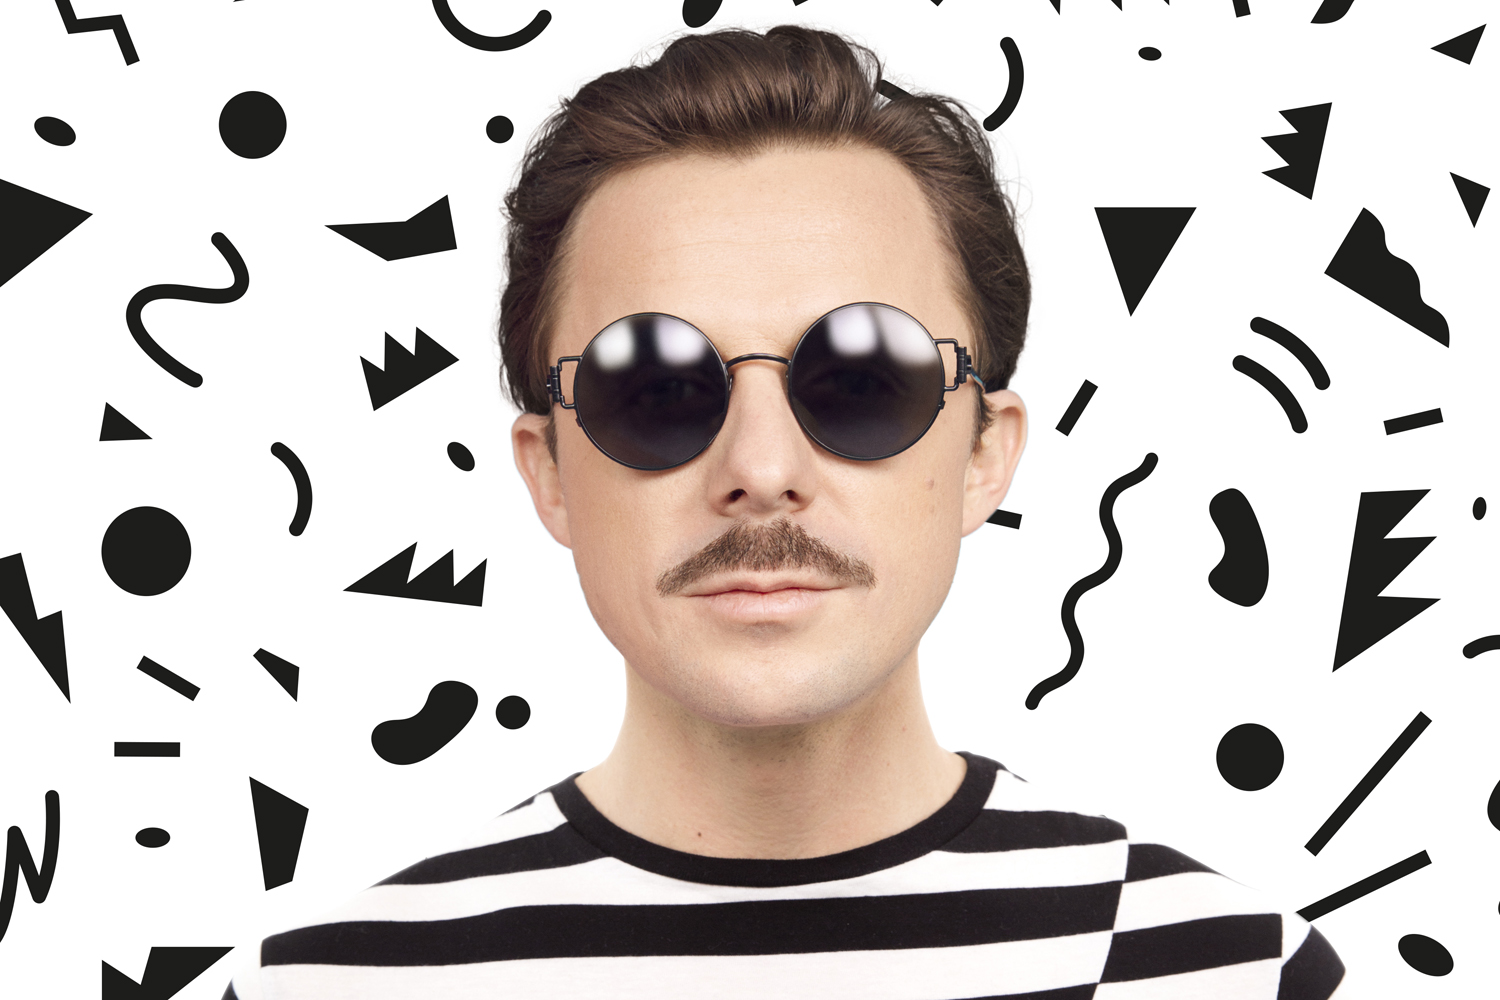 Images of Martin Solveig | 1500x1000